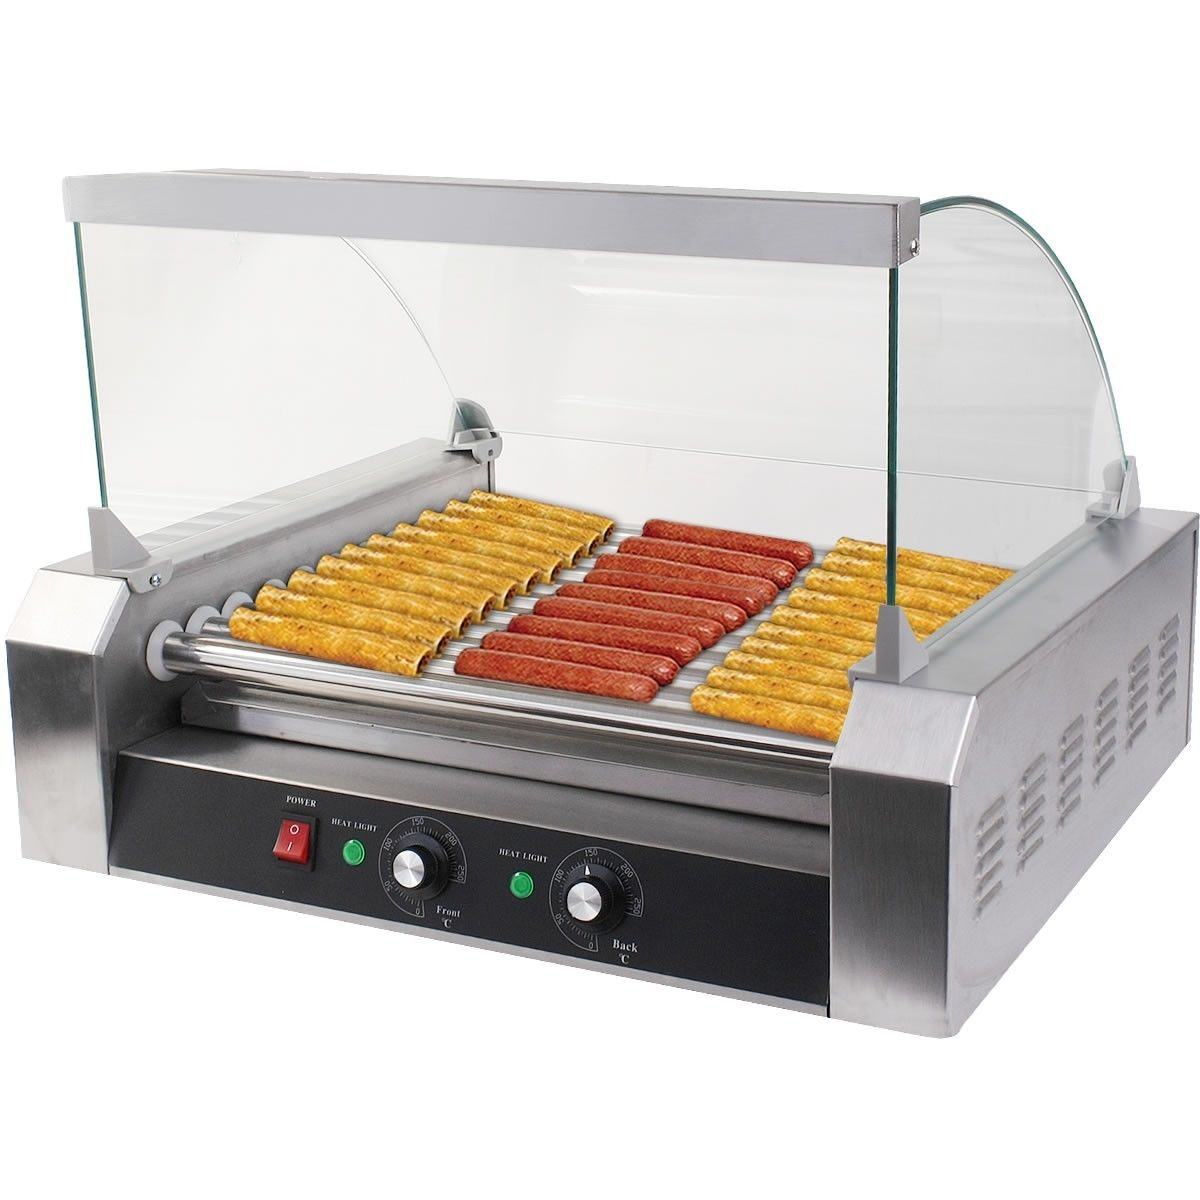 Uncategorized Hot Dog Cookers Specialty Kitchen Appliances electric hot dog grill commercial hotdog maker warmer cooker grilling machine